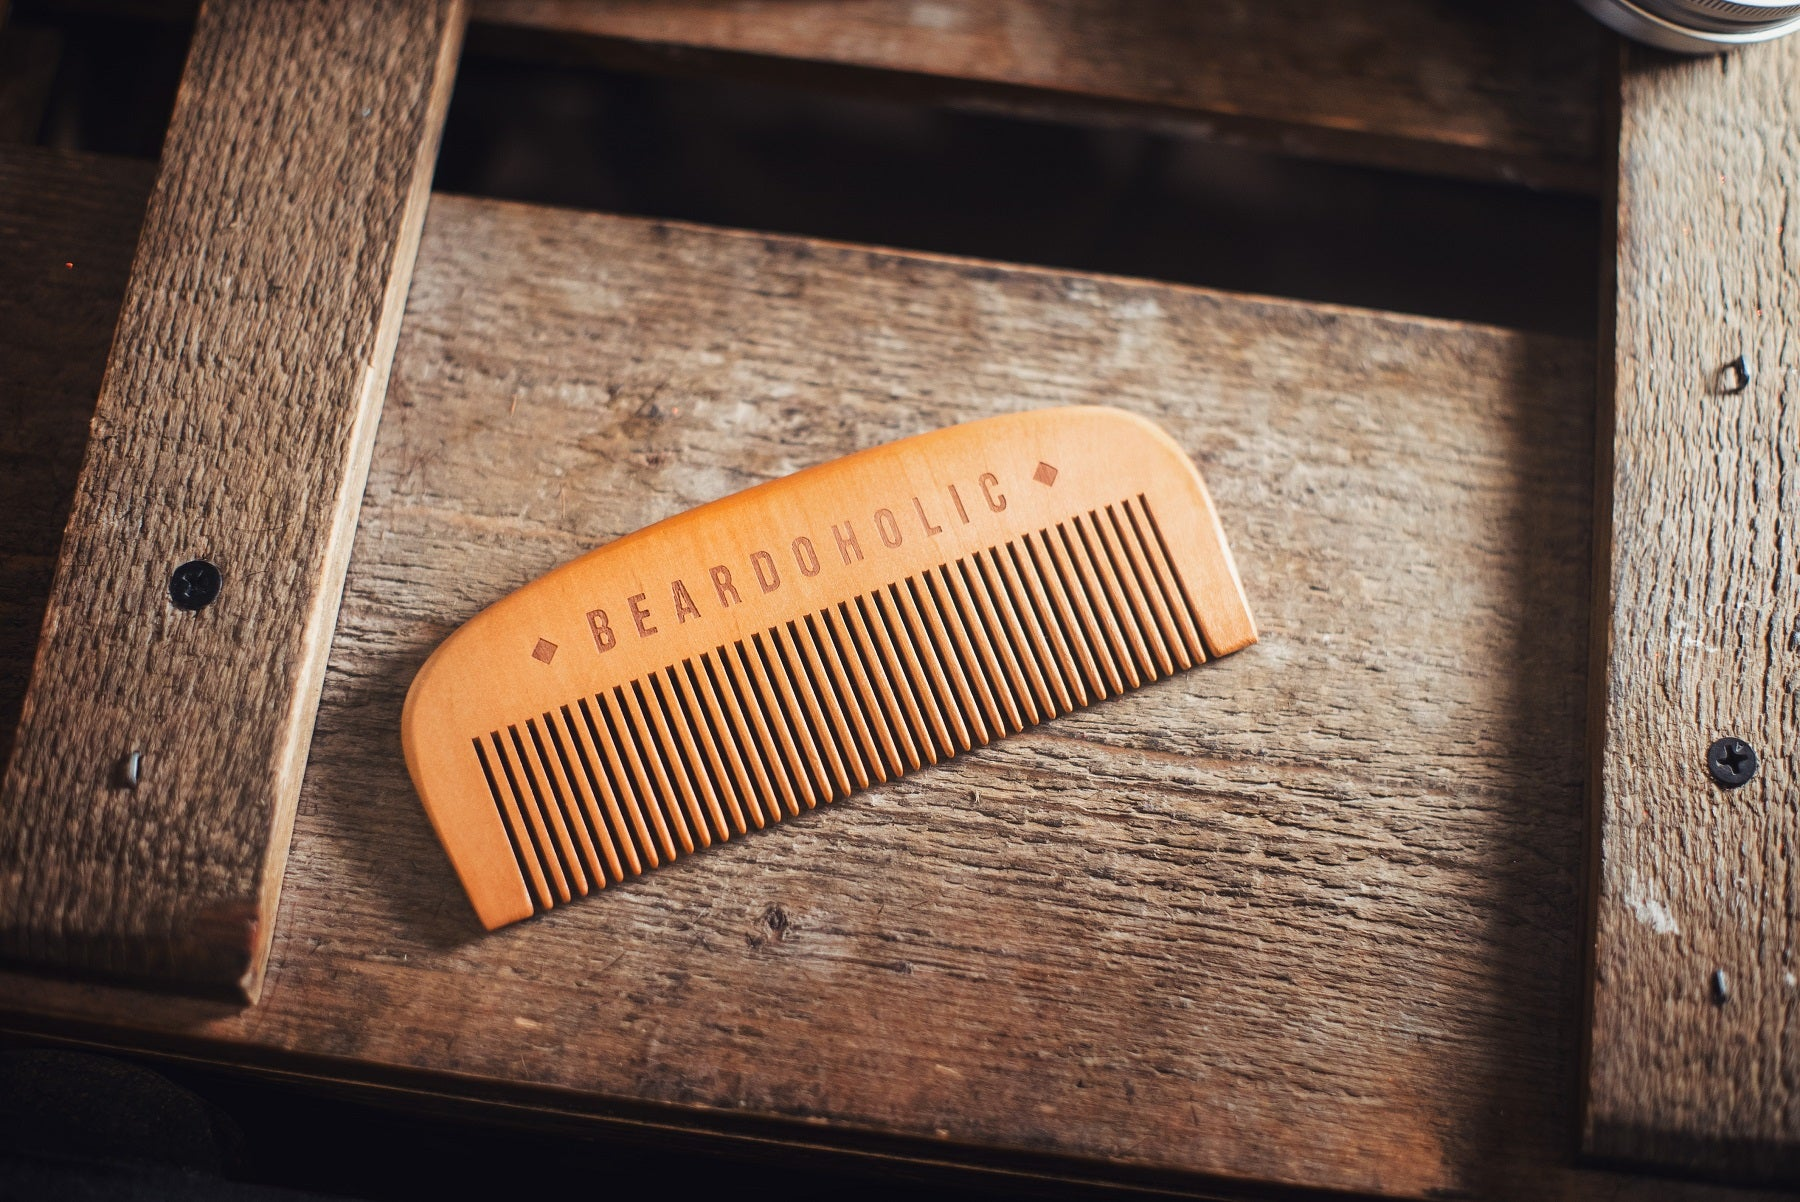 Beardoholic Beard Comb